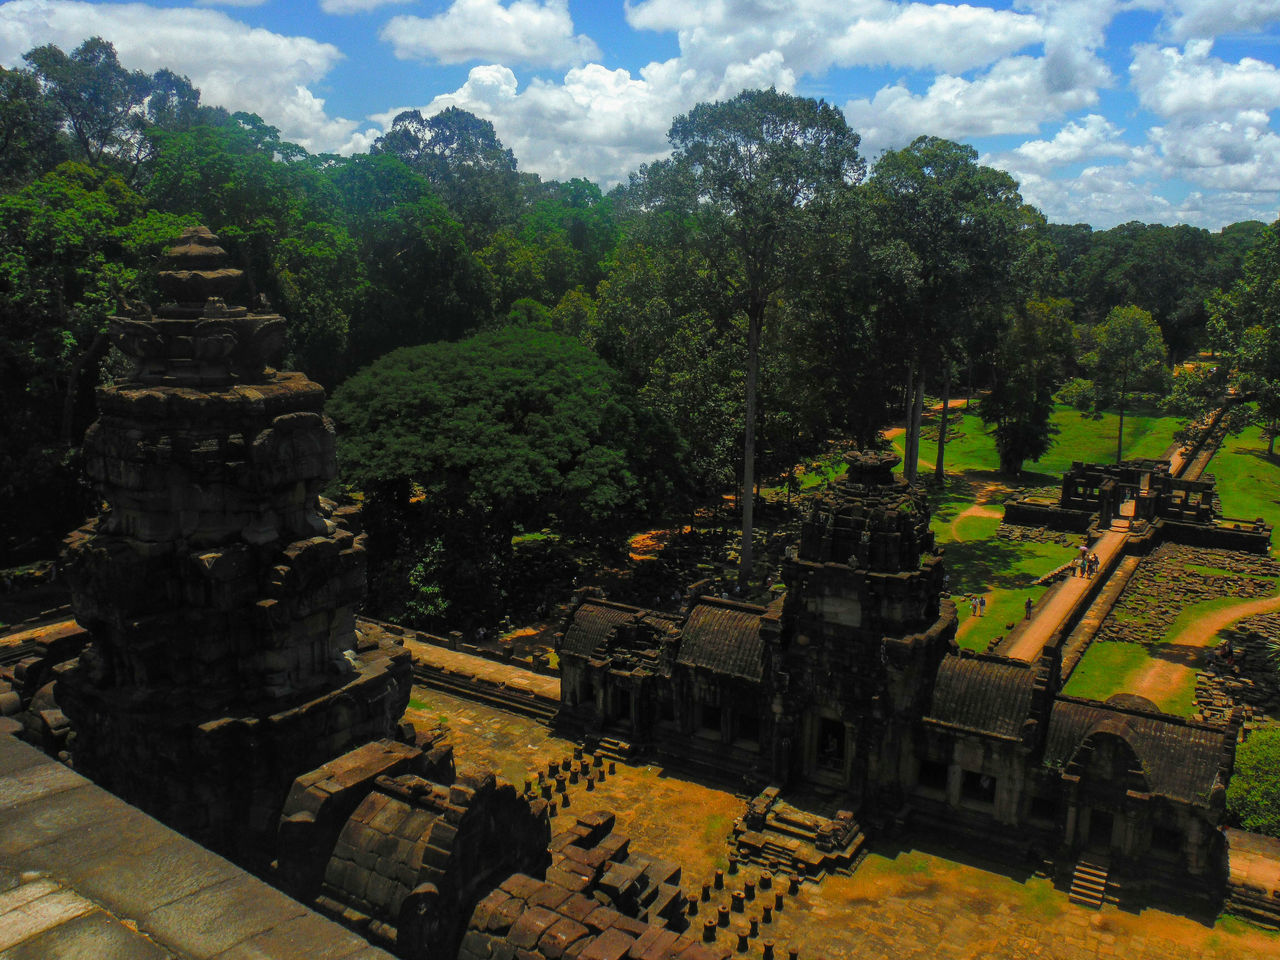 Baphuon, Angkor Wat Siem Reap Cambodia Travel Destinations Explore Cambodia Travel Cambodia Travel Asia Angkor Wat Angkorwat Angkor Angkor Wat, Cambodia Temple Architecture Ancient Temple Ancient Architecture Ancient Stone Temple Baphuon Baphuon Temple Angkor Thom Angkorthom Outdoors High Angle View Looking Down Architecture No People Sun And Clouds